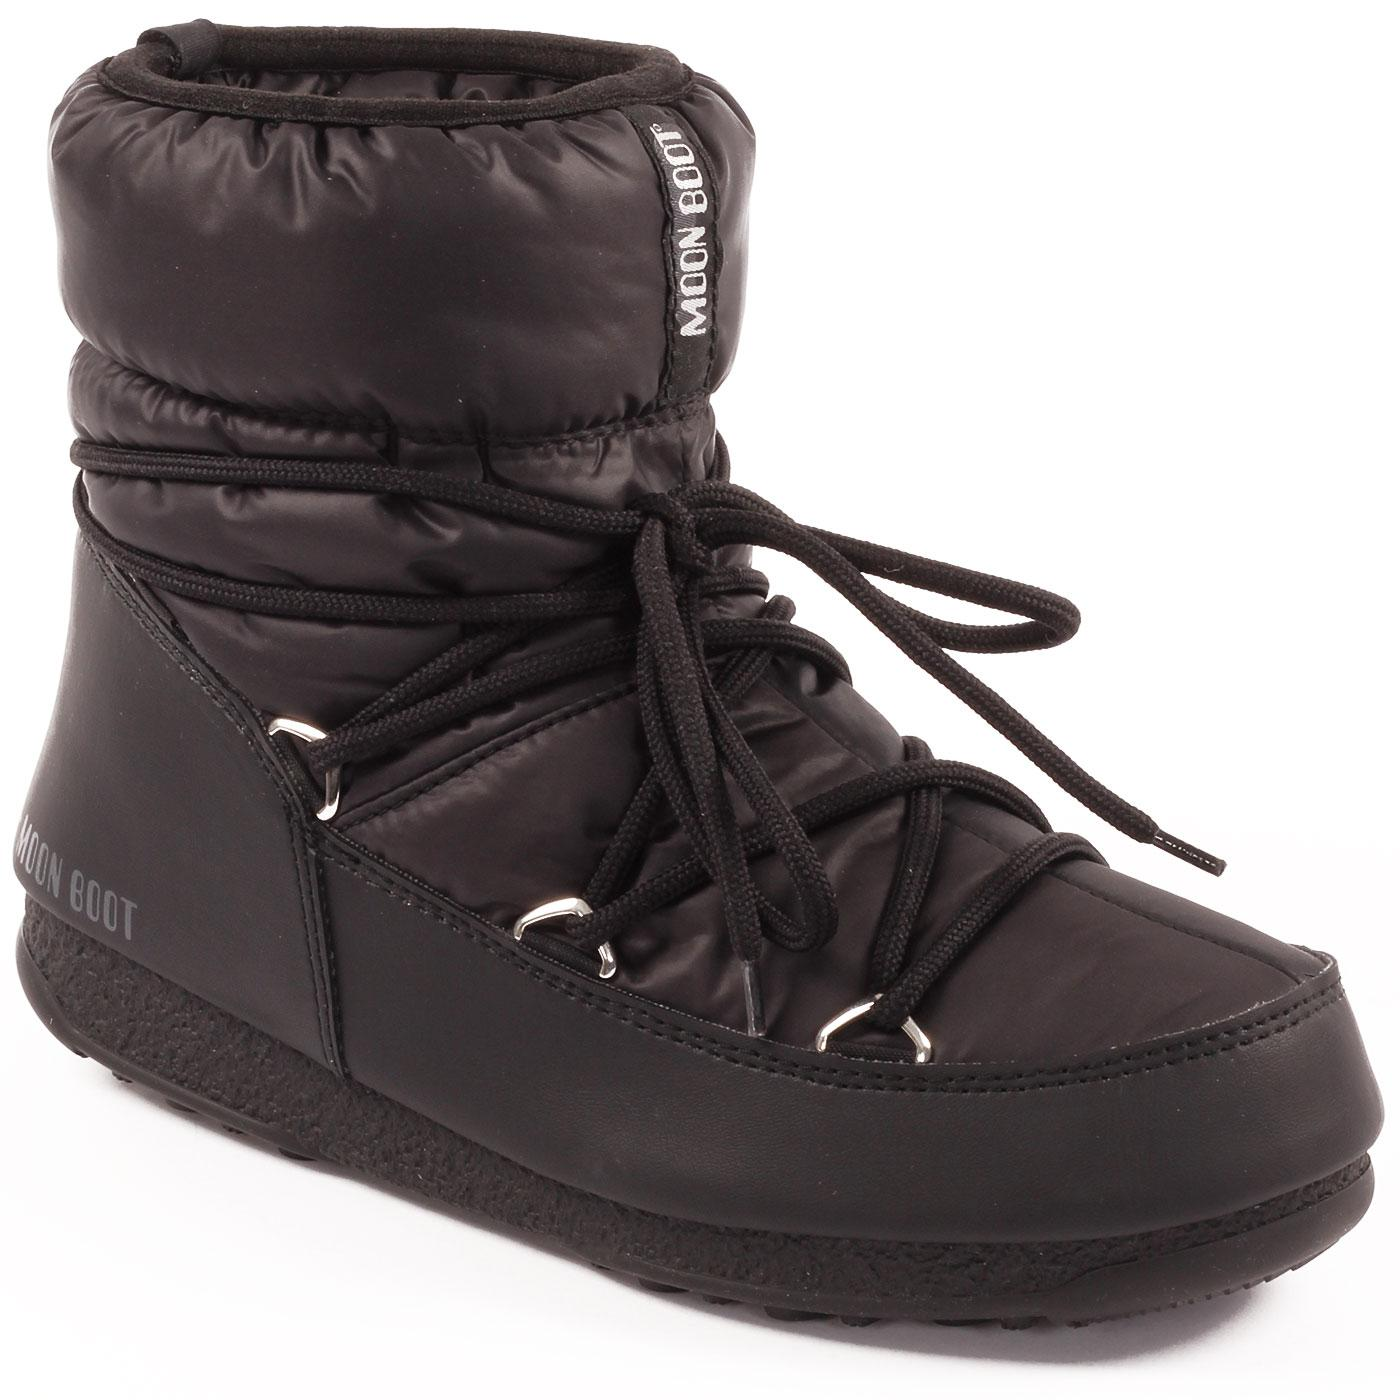 MOON BOOT Low Nylon WP Retro 70s Snow Boots -Black